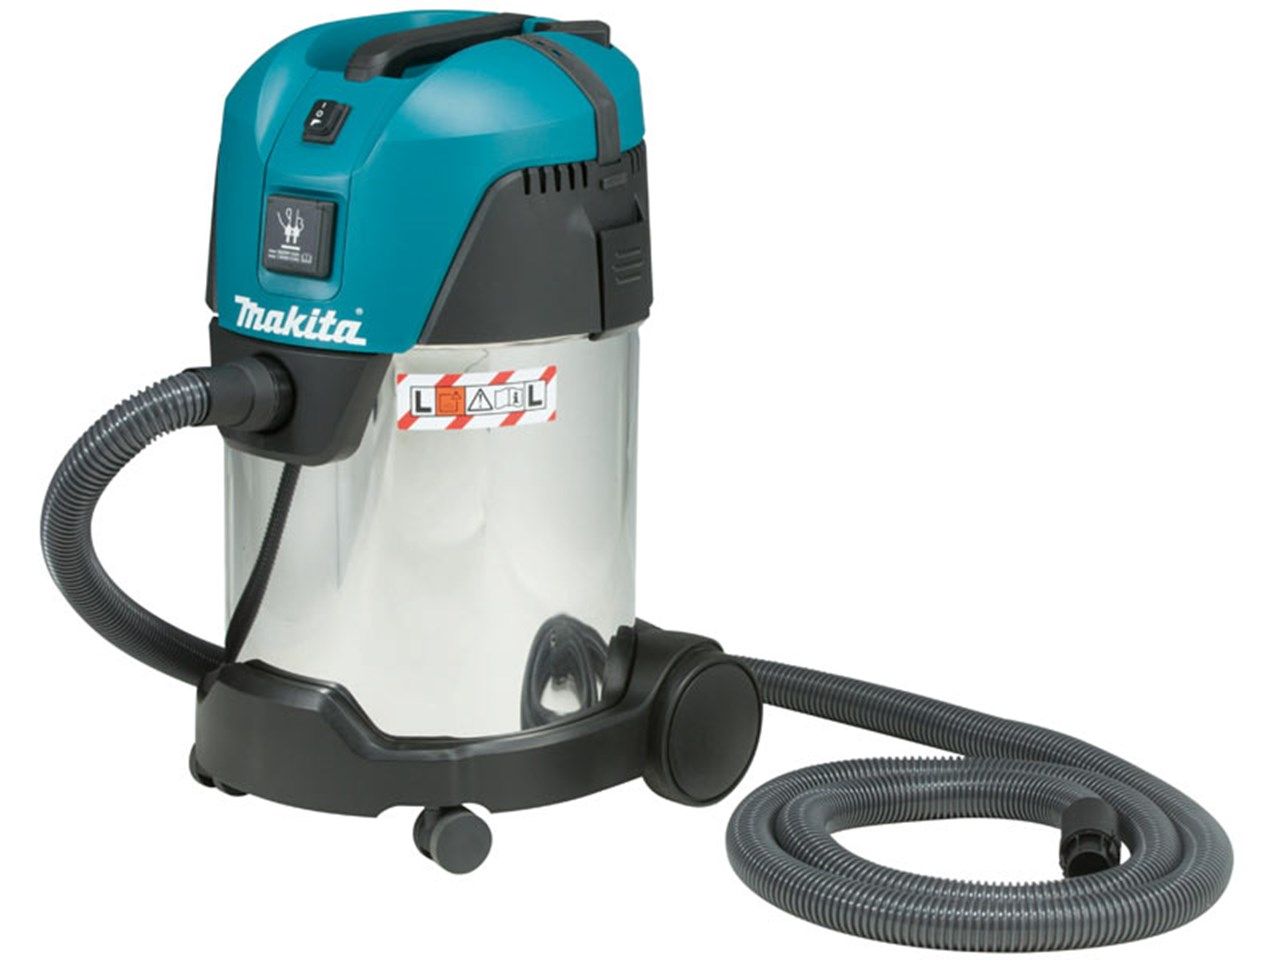 Makita VC3011L 2 240v Vacuum Cleaner 28L Wet And Dry Dust Extractor